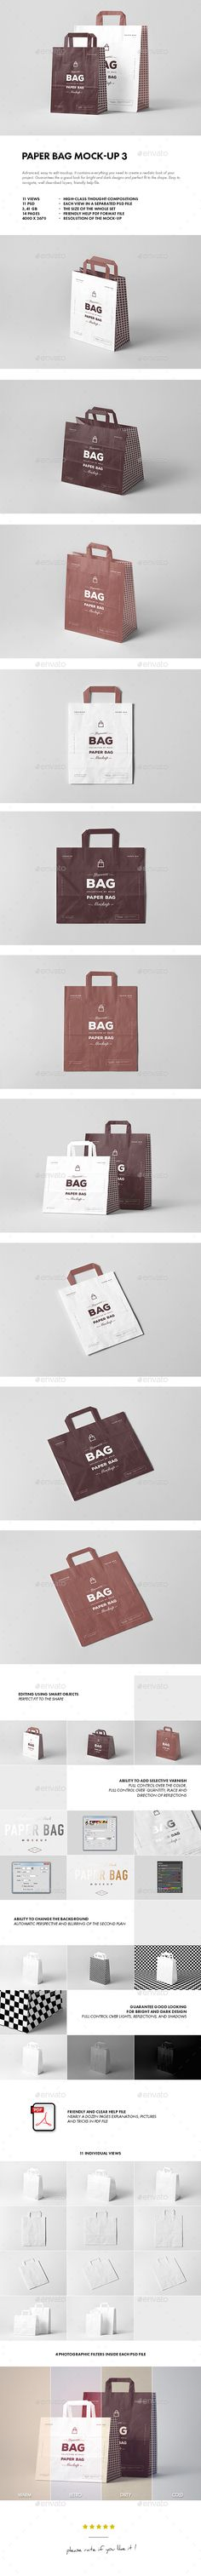 #Paper #Bag Mock-up 3